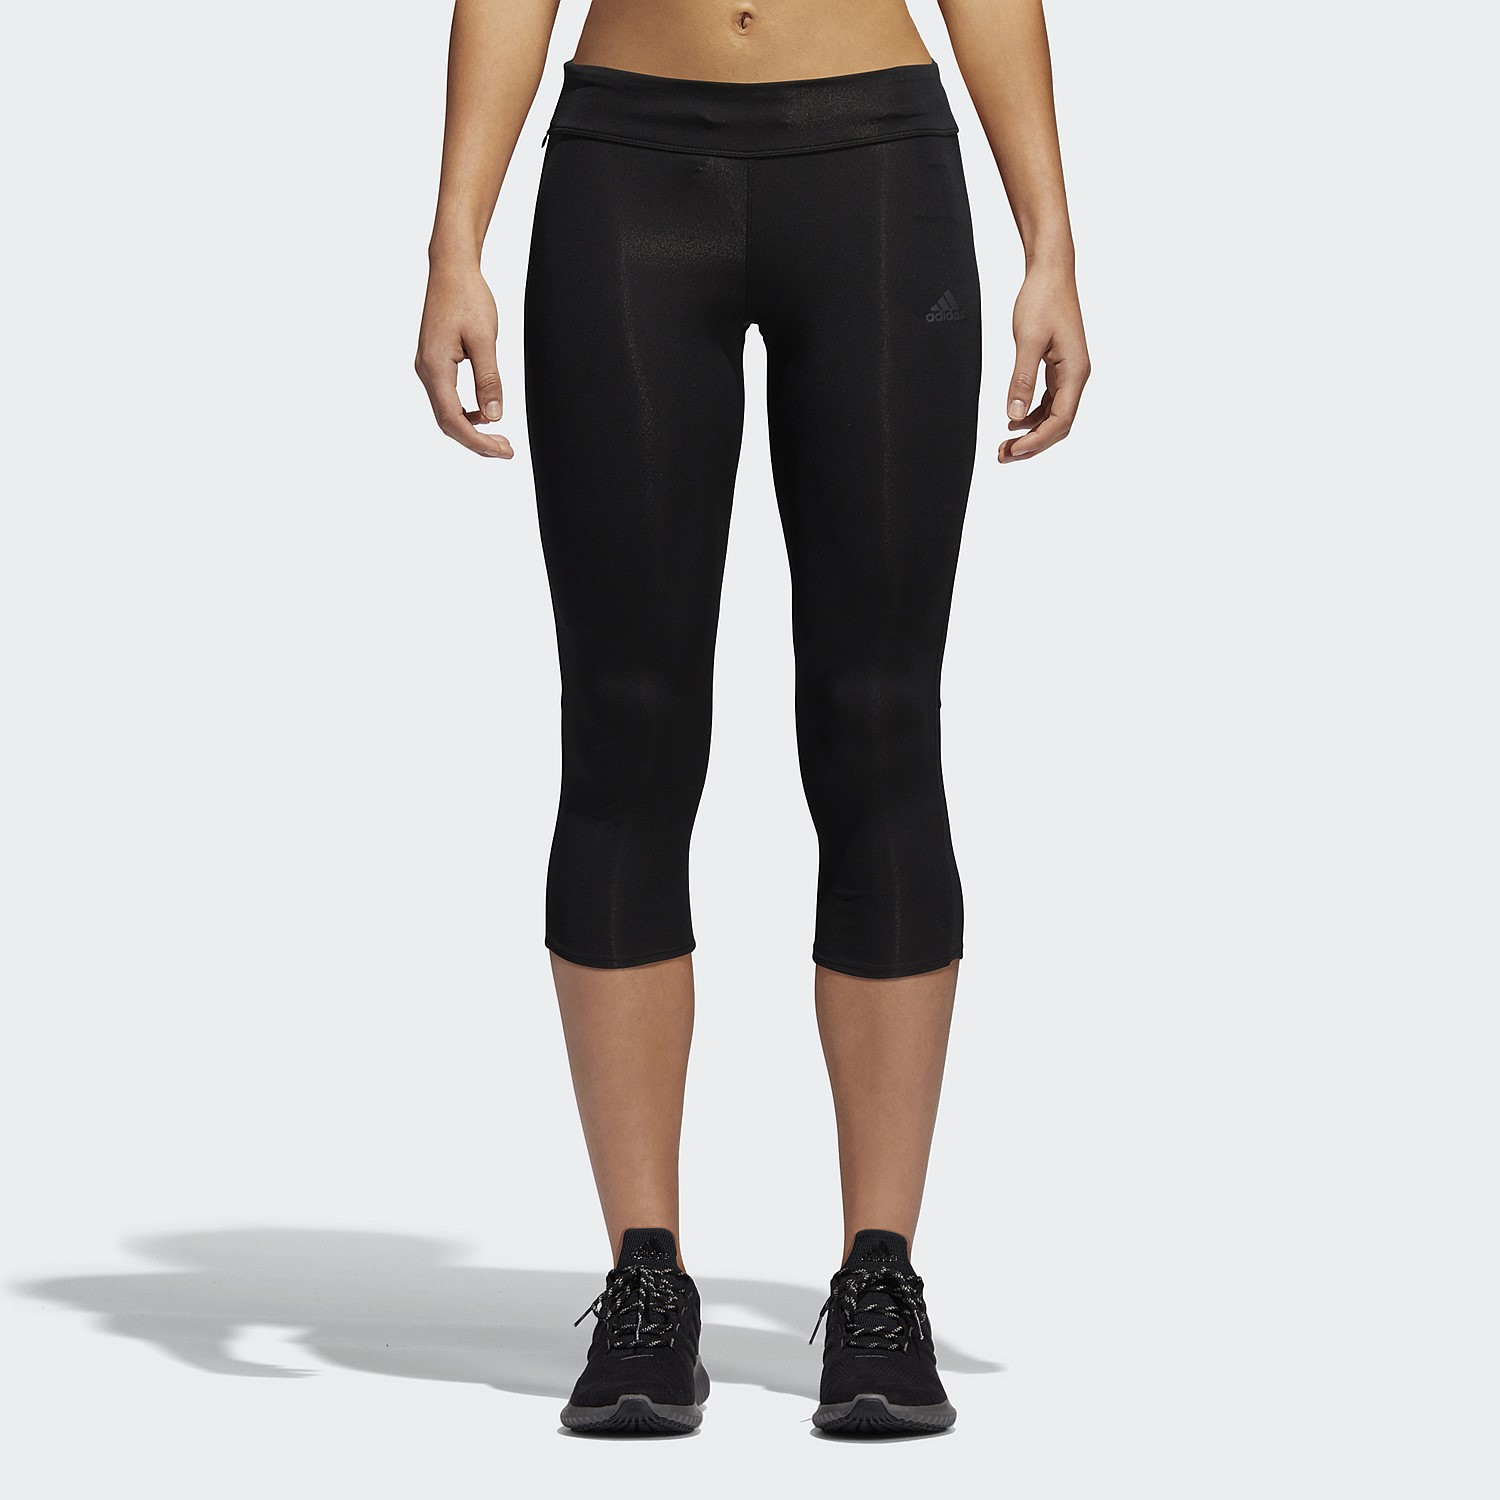 new styles 27975 1b4b3 adidas   Shop adidas Performance Clothing, Footwear and Accessories Online    Stirling Sports - Response 3 4 Tight